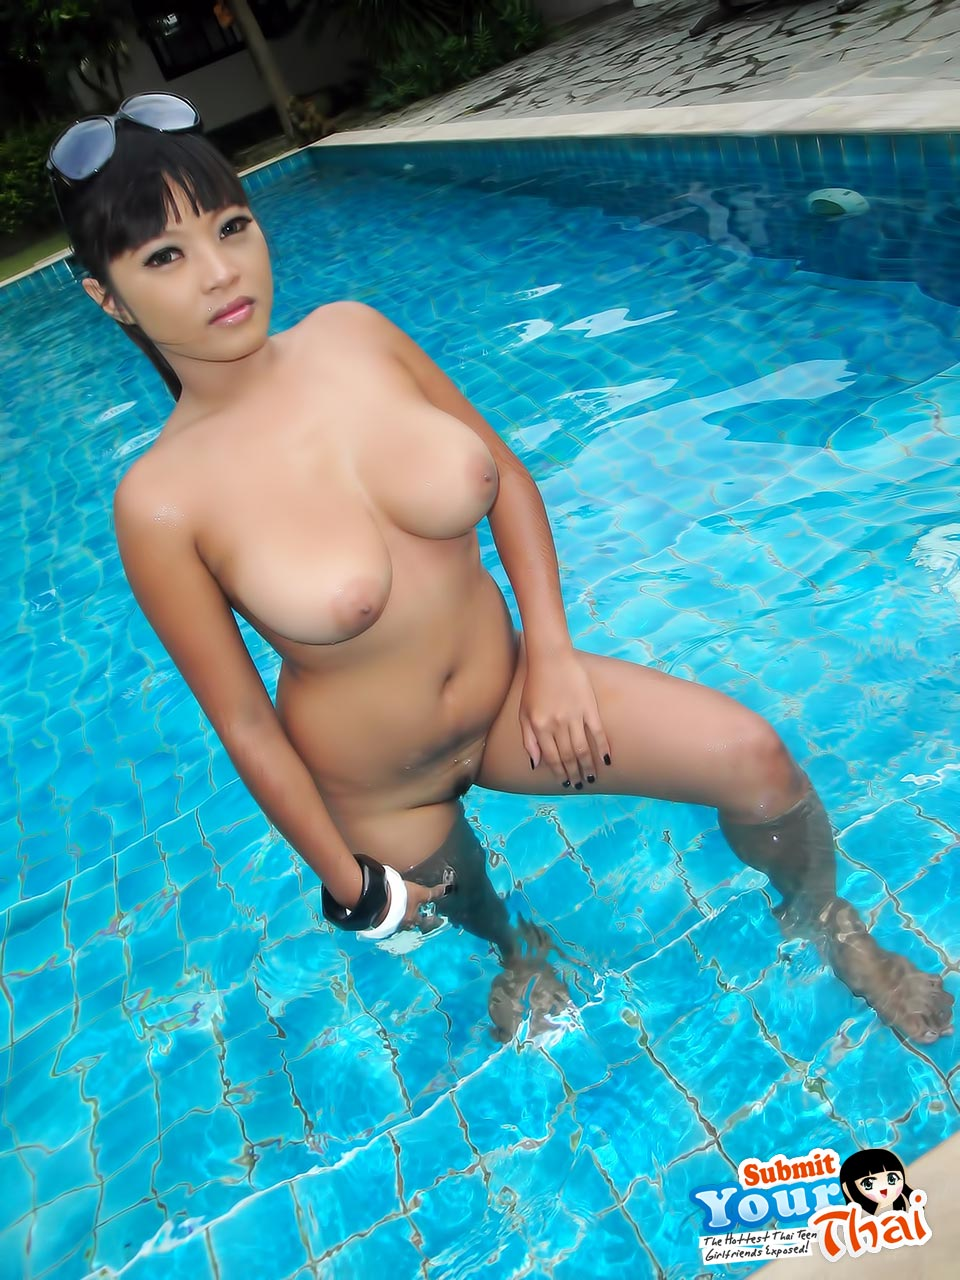 nude japanese topless girls full photos